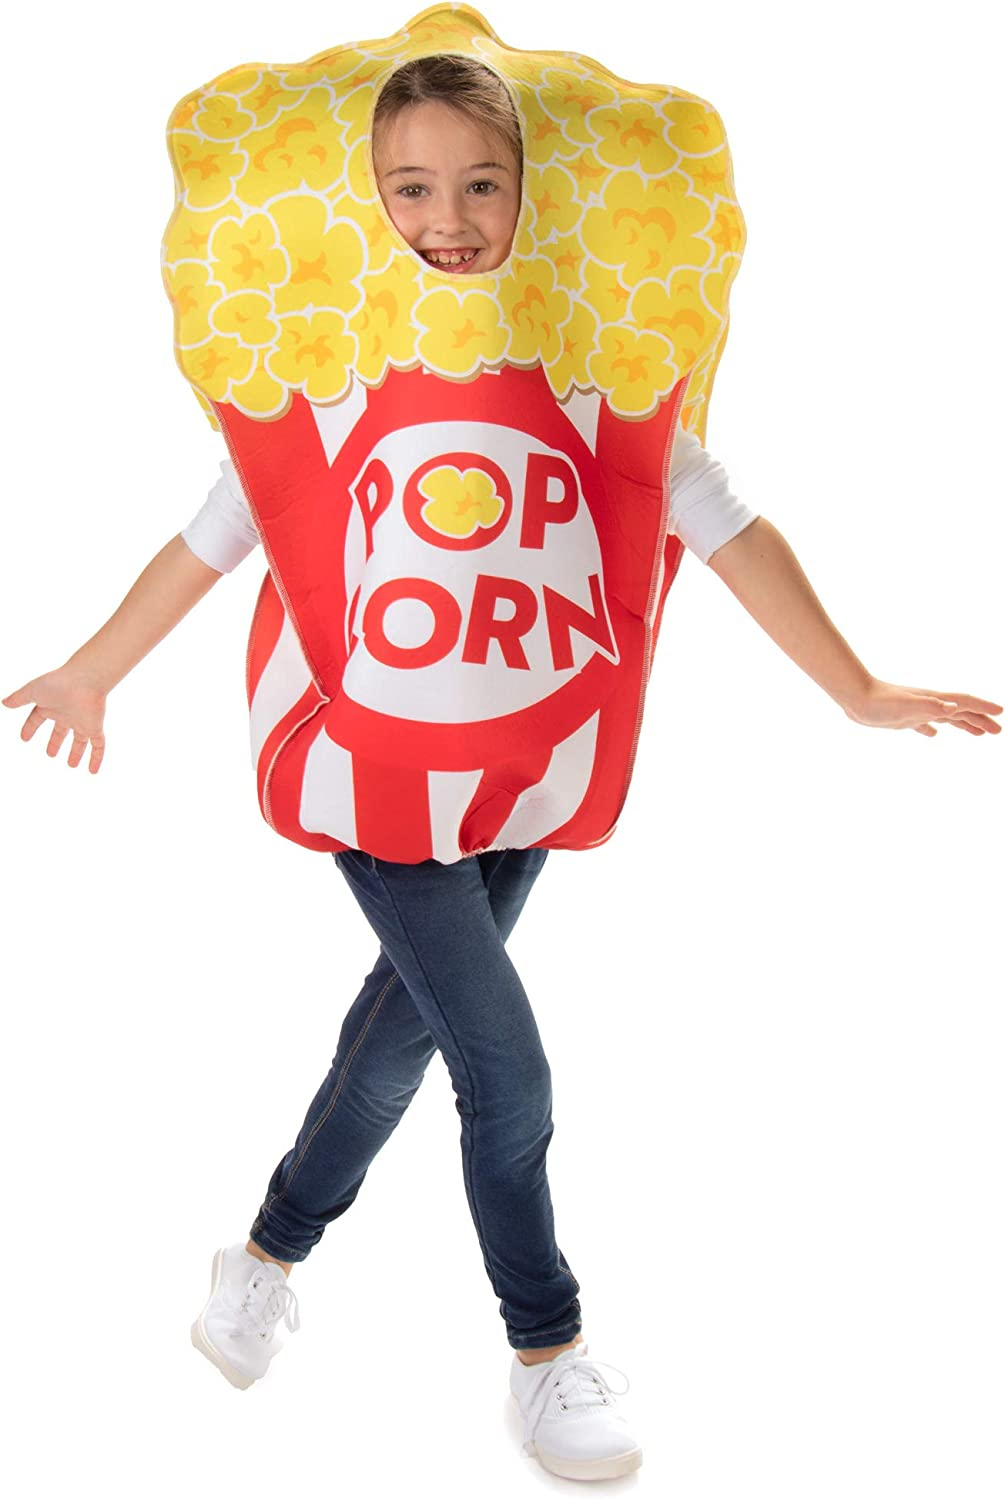 Movie Theatre Popcorn Childrens Halloween Costume - Funny Food Kids Outfit